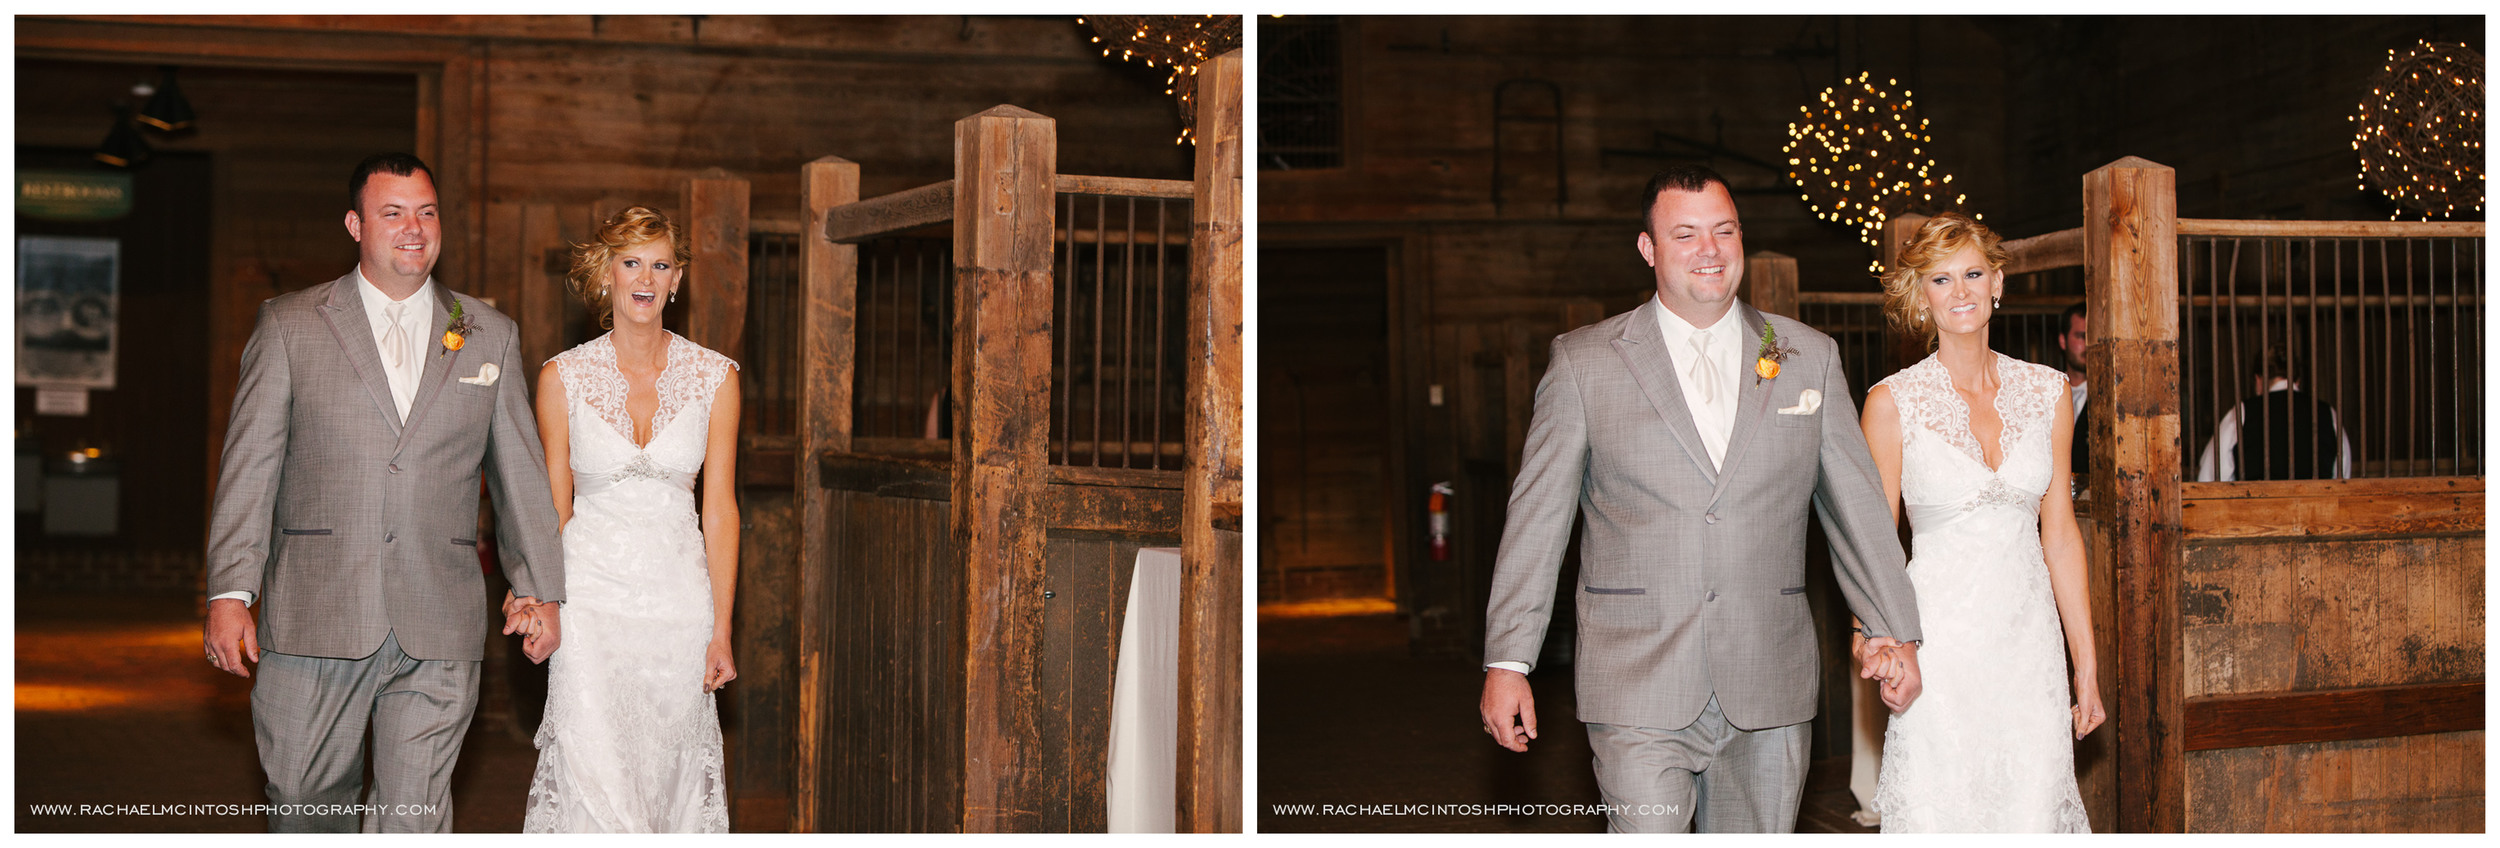 Biltmore Antler Hill Barn Wedding 104.5.jpg